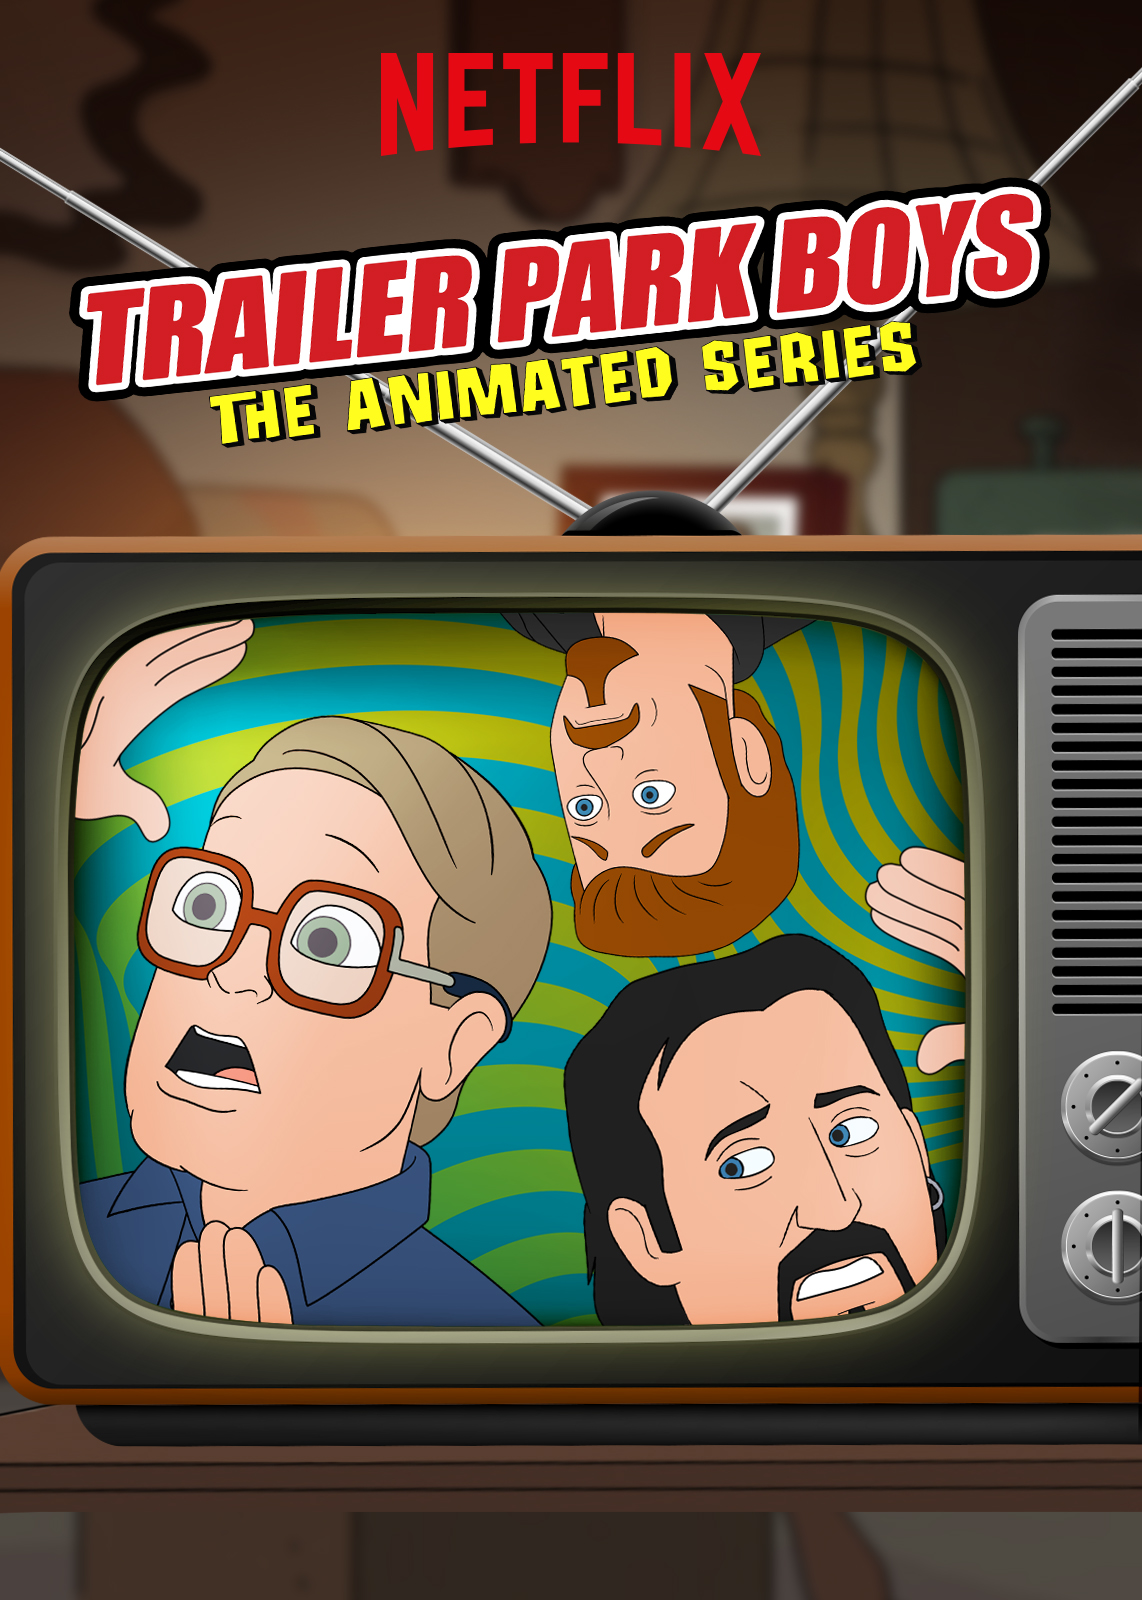 Trailer.Park.Boys.The.Animated.Series.S02E06.SPANiSH.1080p.WEB.x264-4FiRE